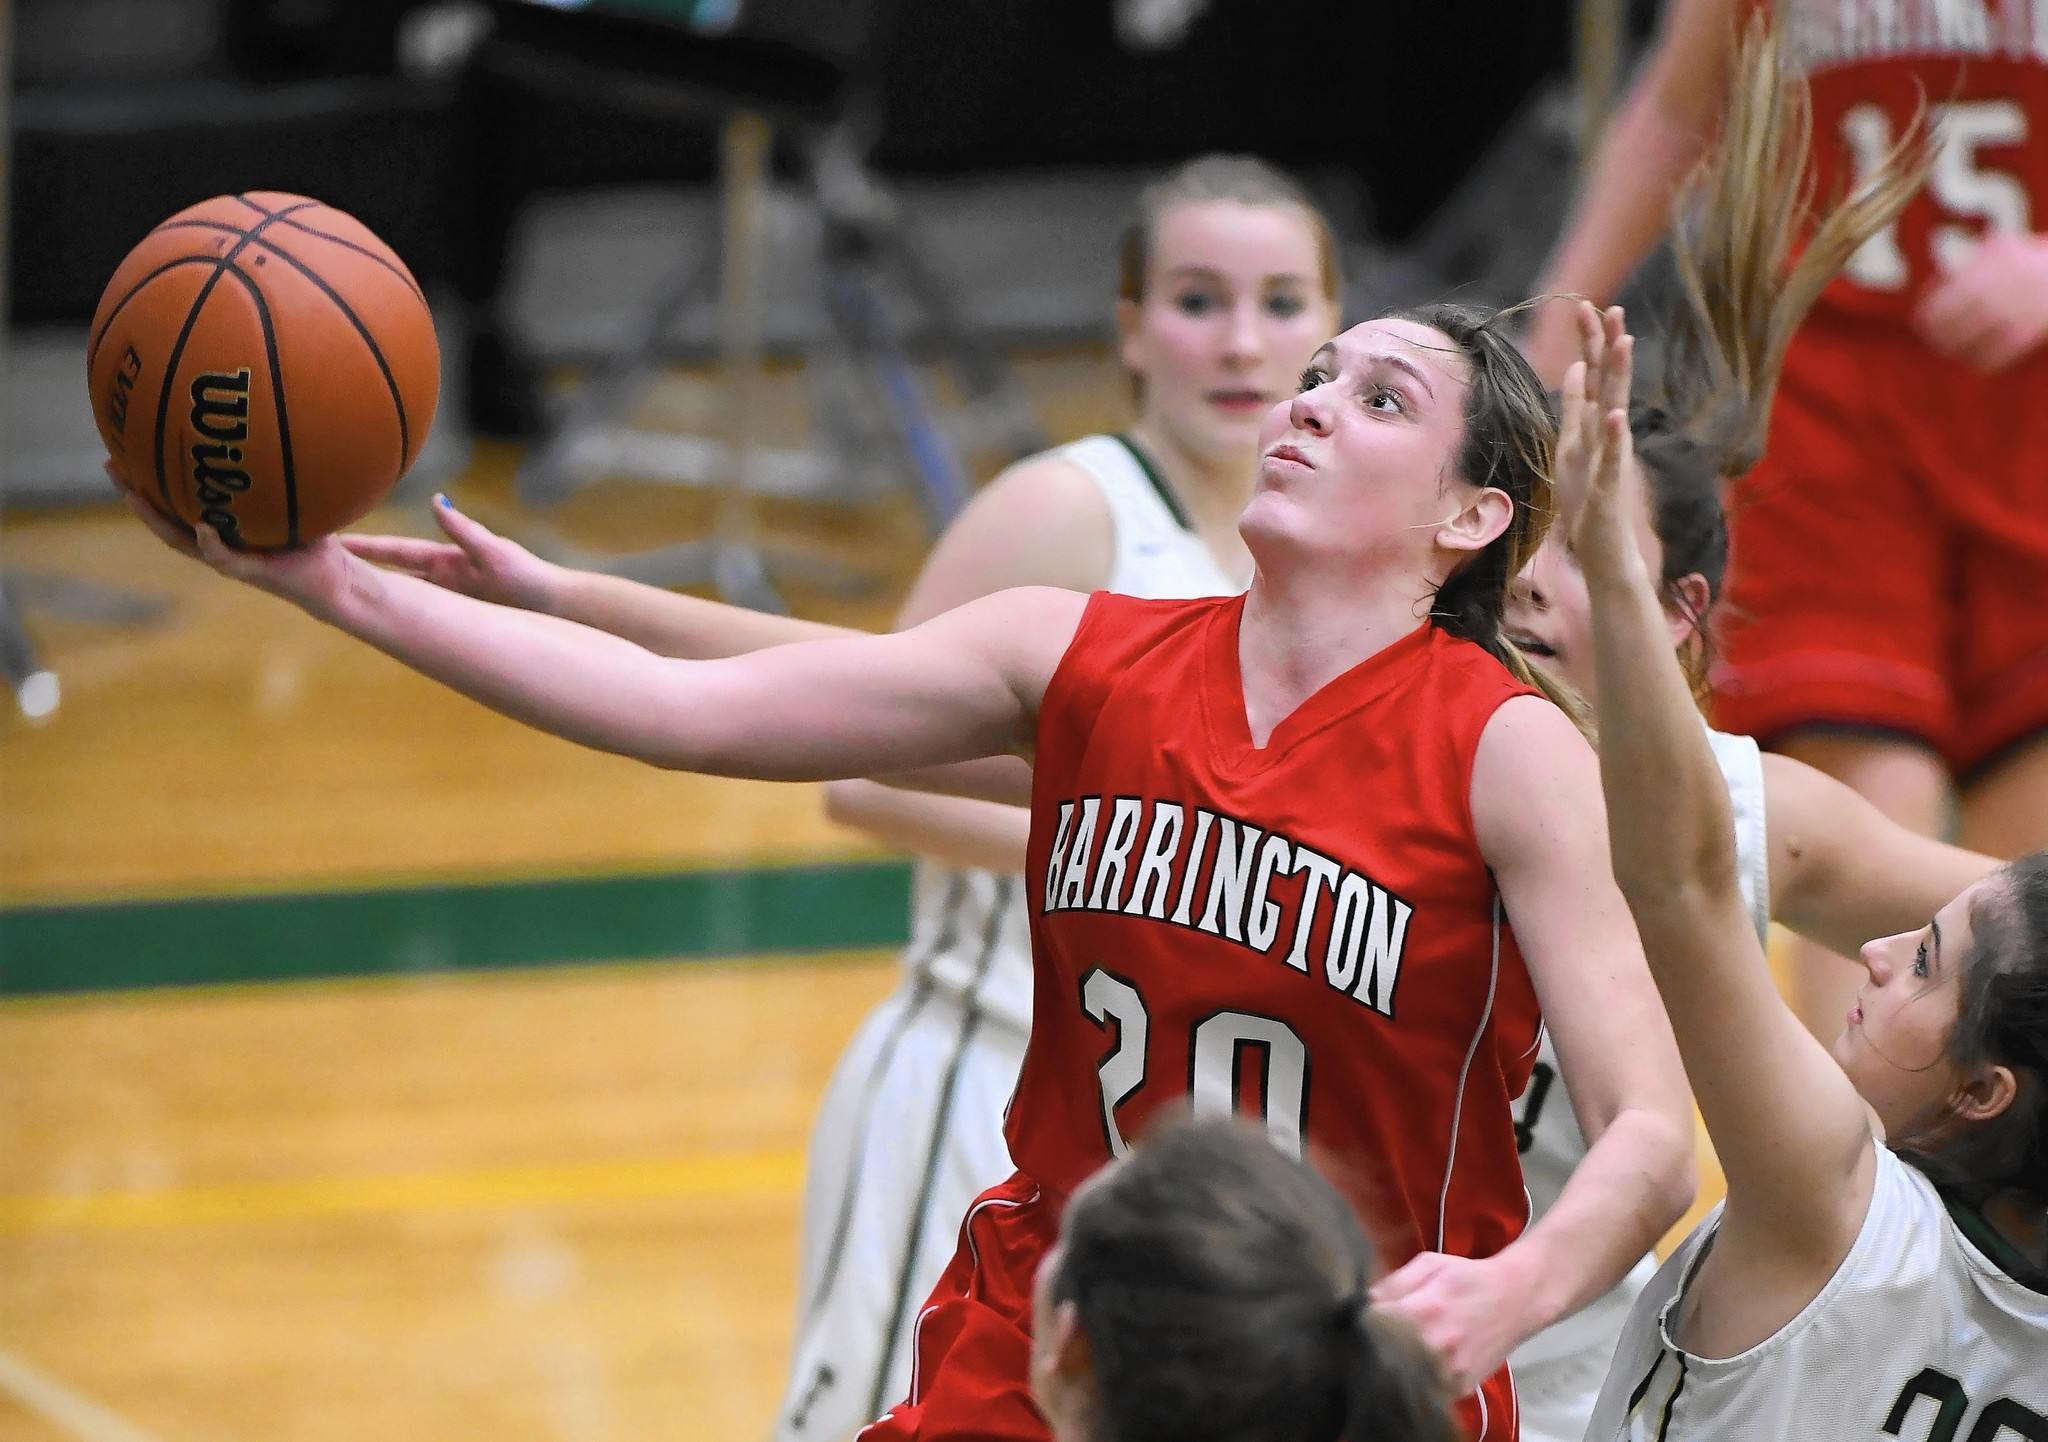 barrington girls One day holiday shootout december 9 (sun) barrington/elmhurst  we specialize in illinois boys basketball events and have a great selection of girls basketball.